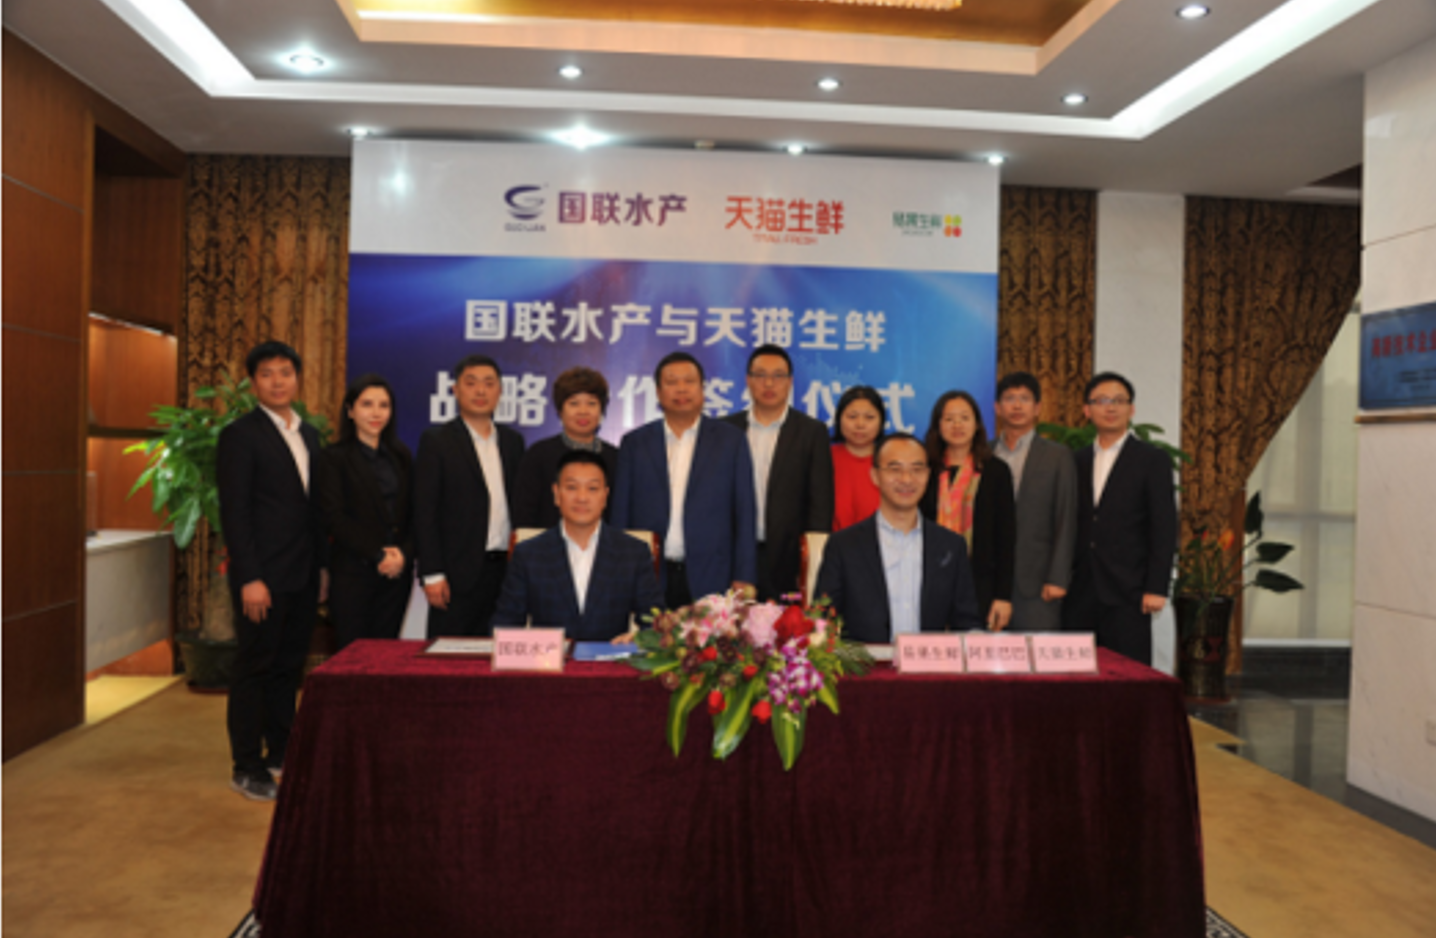 Yiguo Signs Cooperation Agreement with Guolian to Supply High-end Seafood on T-mall